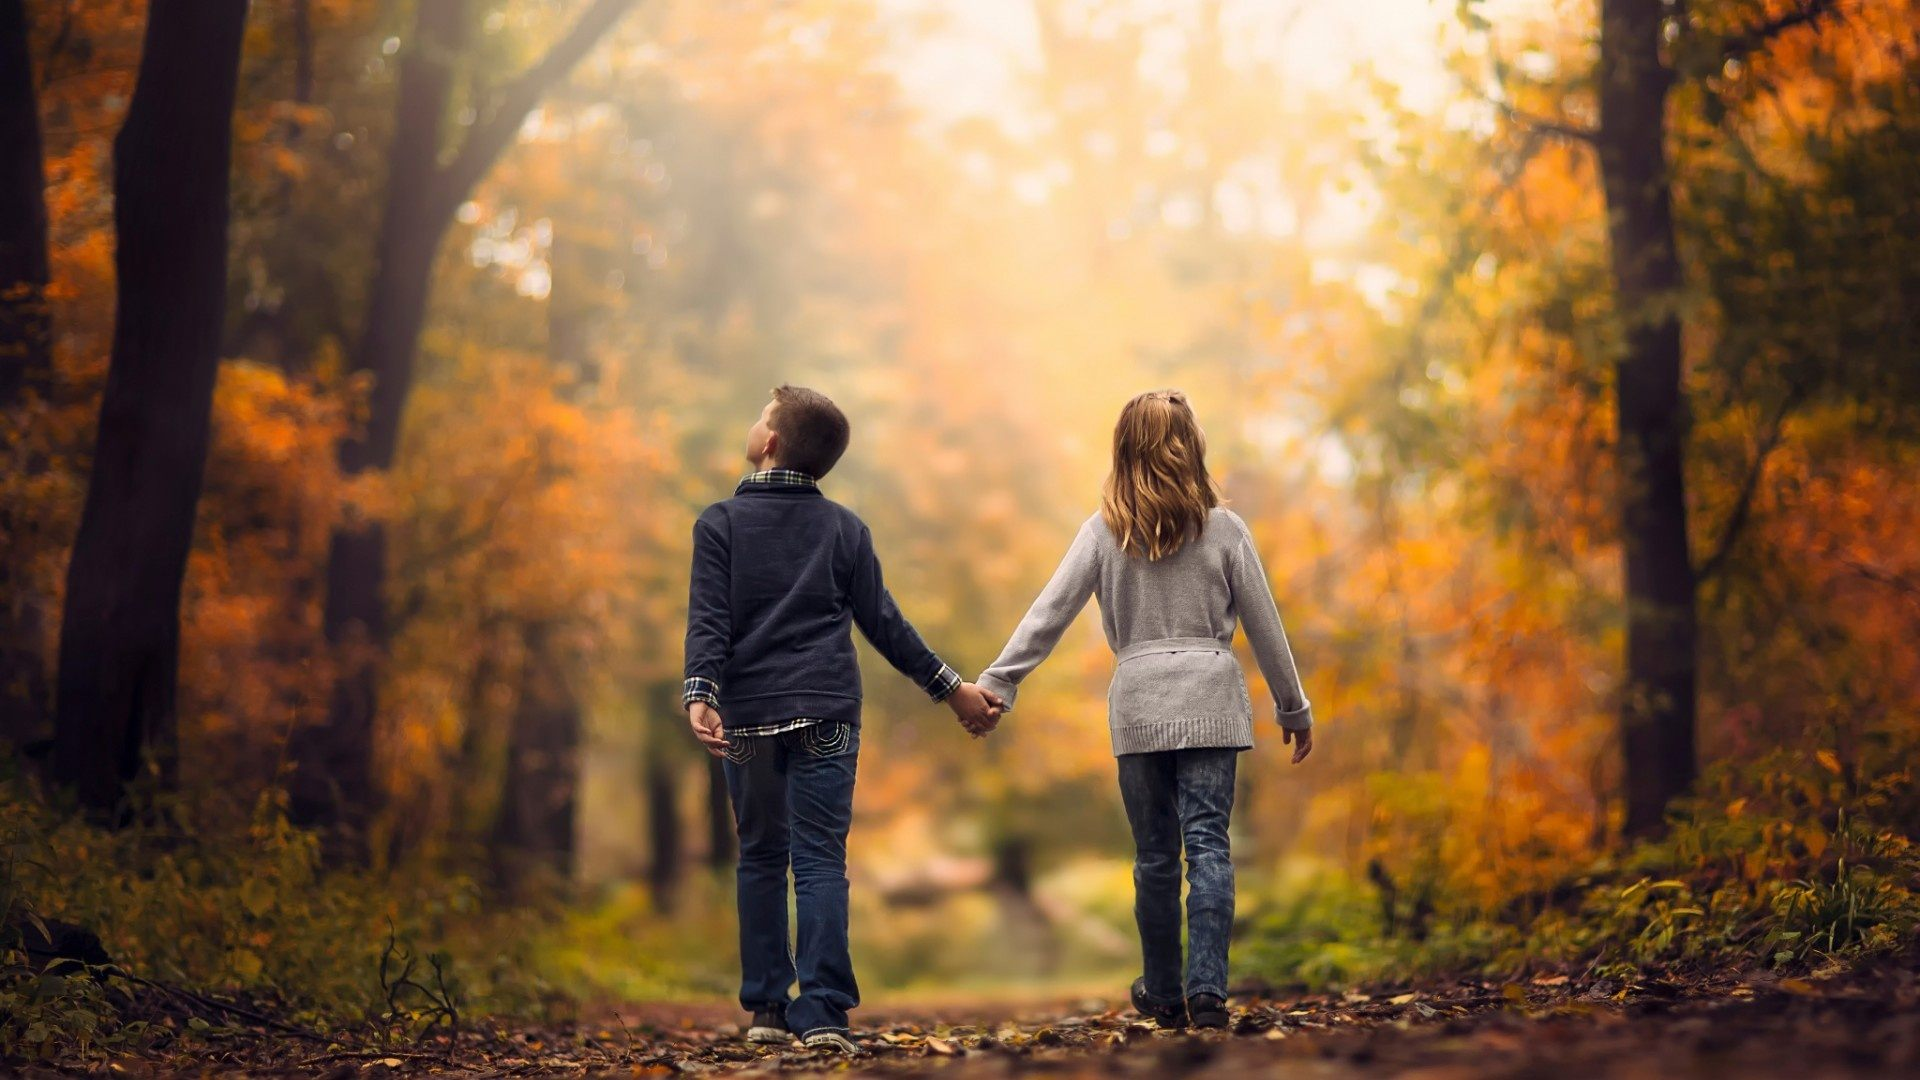 Love Couple Wallpaper Hd 1080p Free Download Hd Love Pic: Beautiful Couple Wallpaper